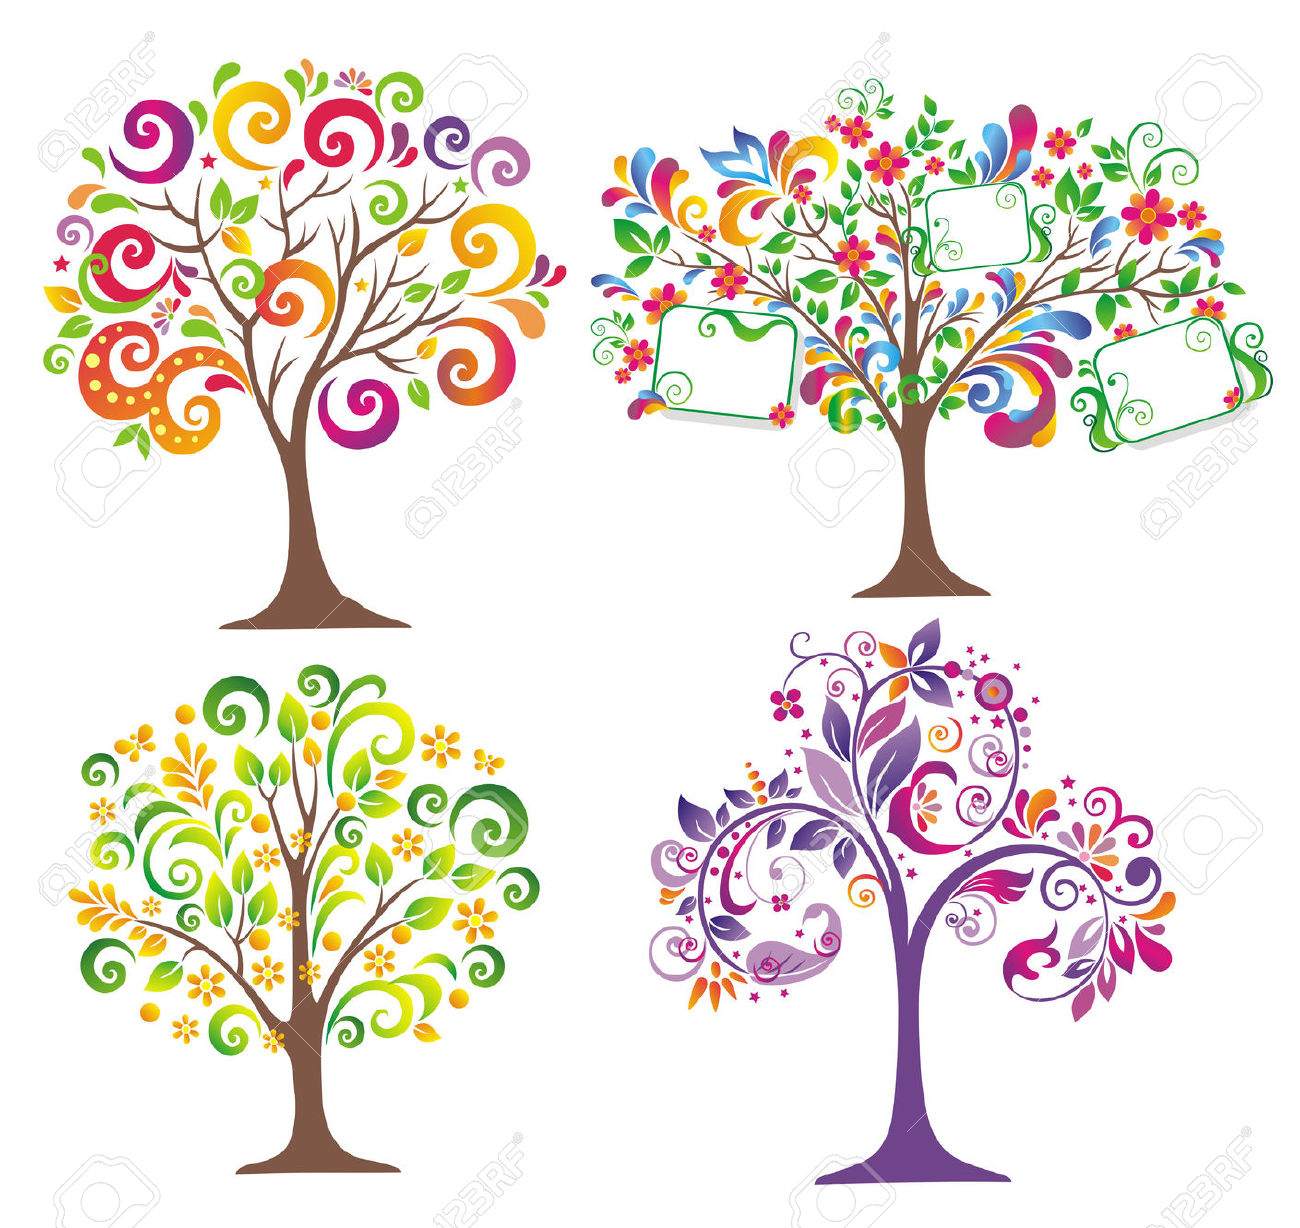 Beautiful trees clipart - Clipground